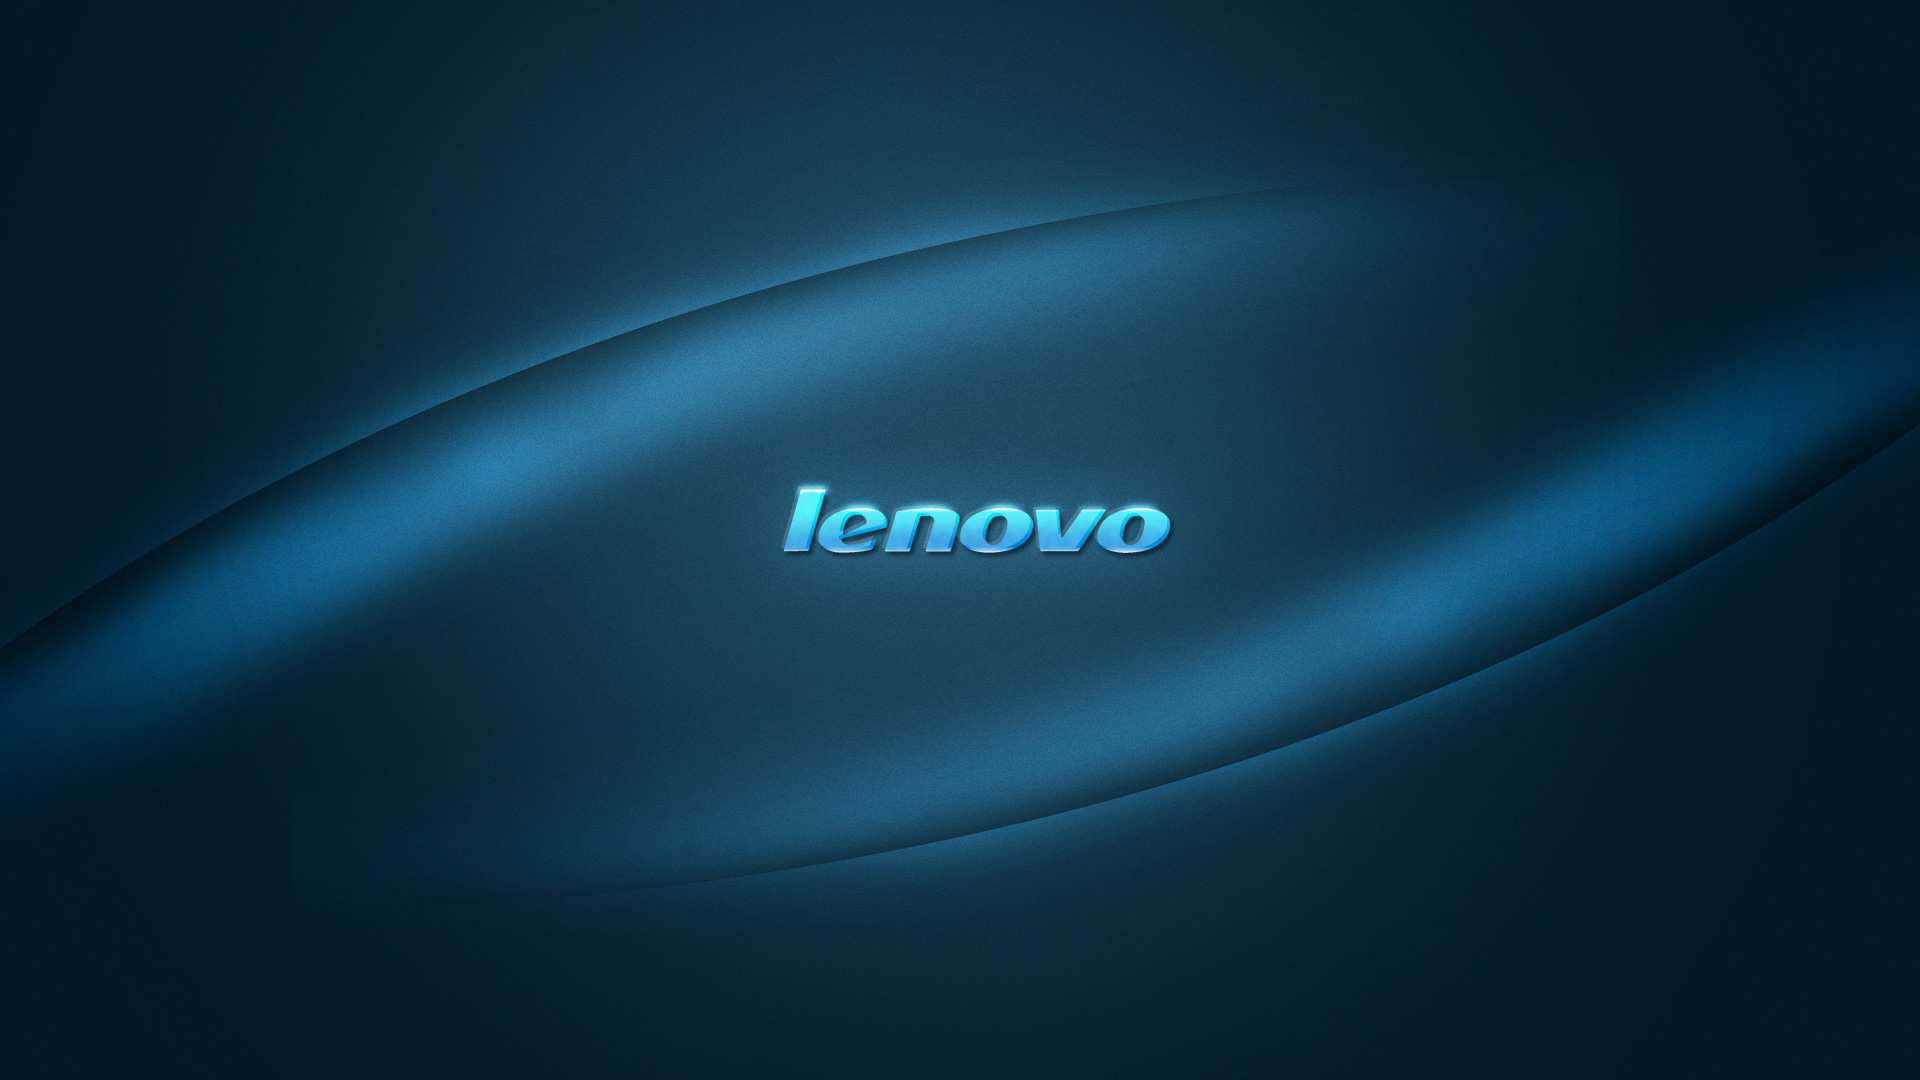 Awesome Lenovo Wallpaper 15603